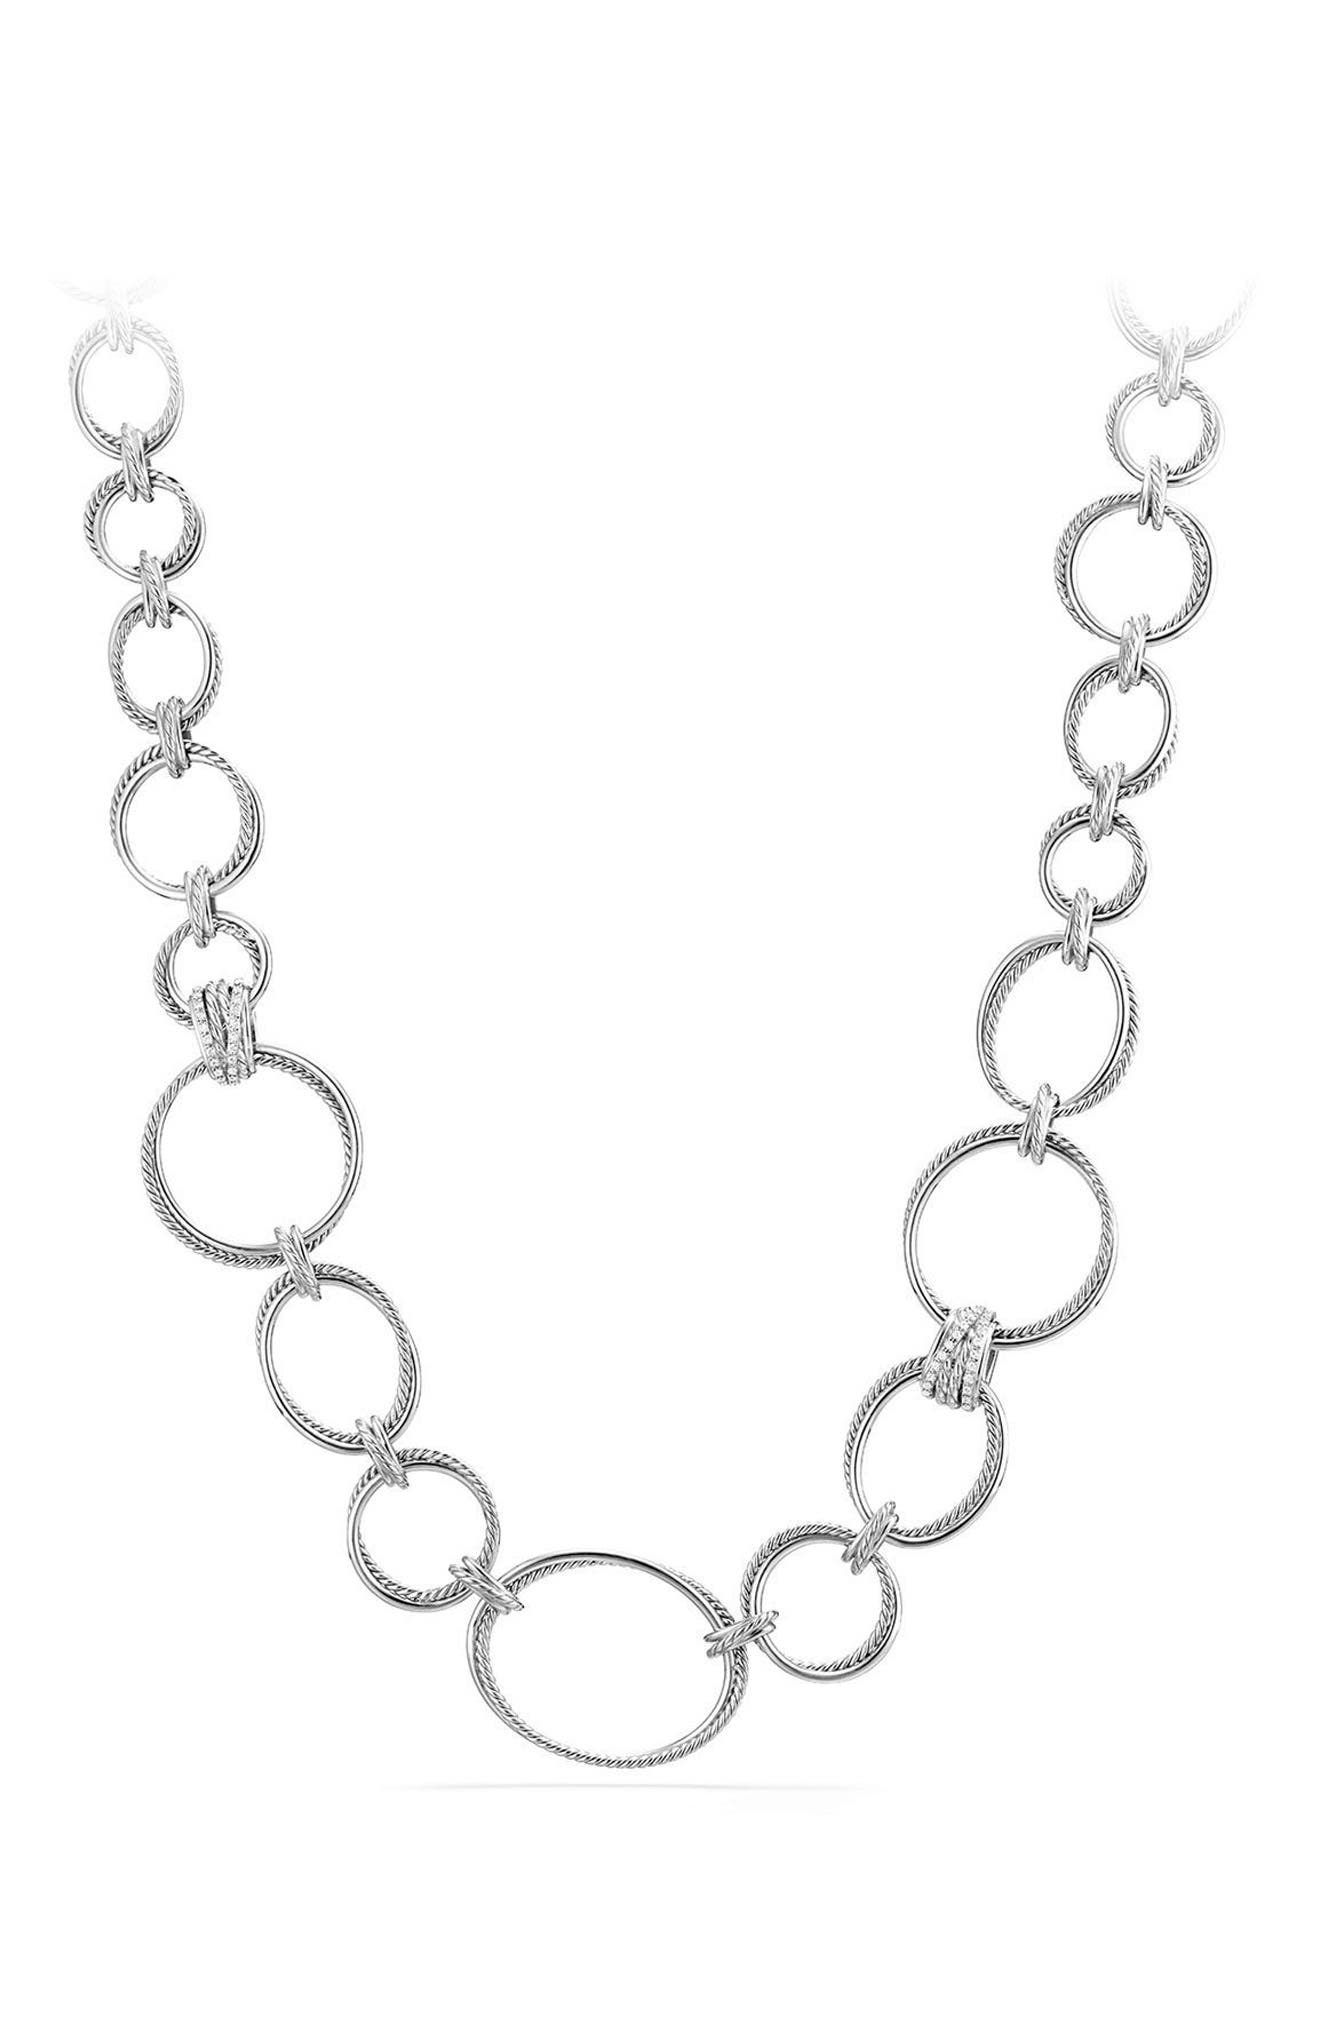 David Yurman Crossover Convertible Statement Necklace with Diamonds